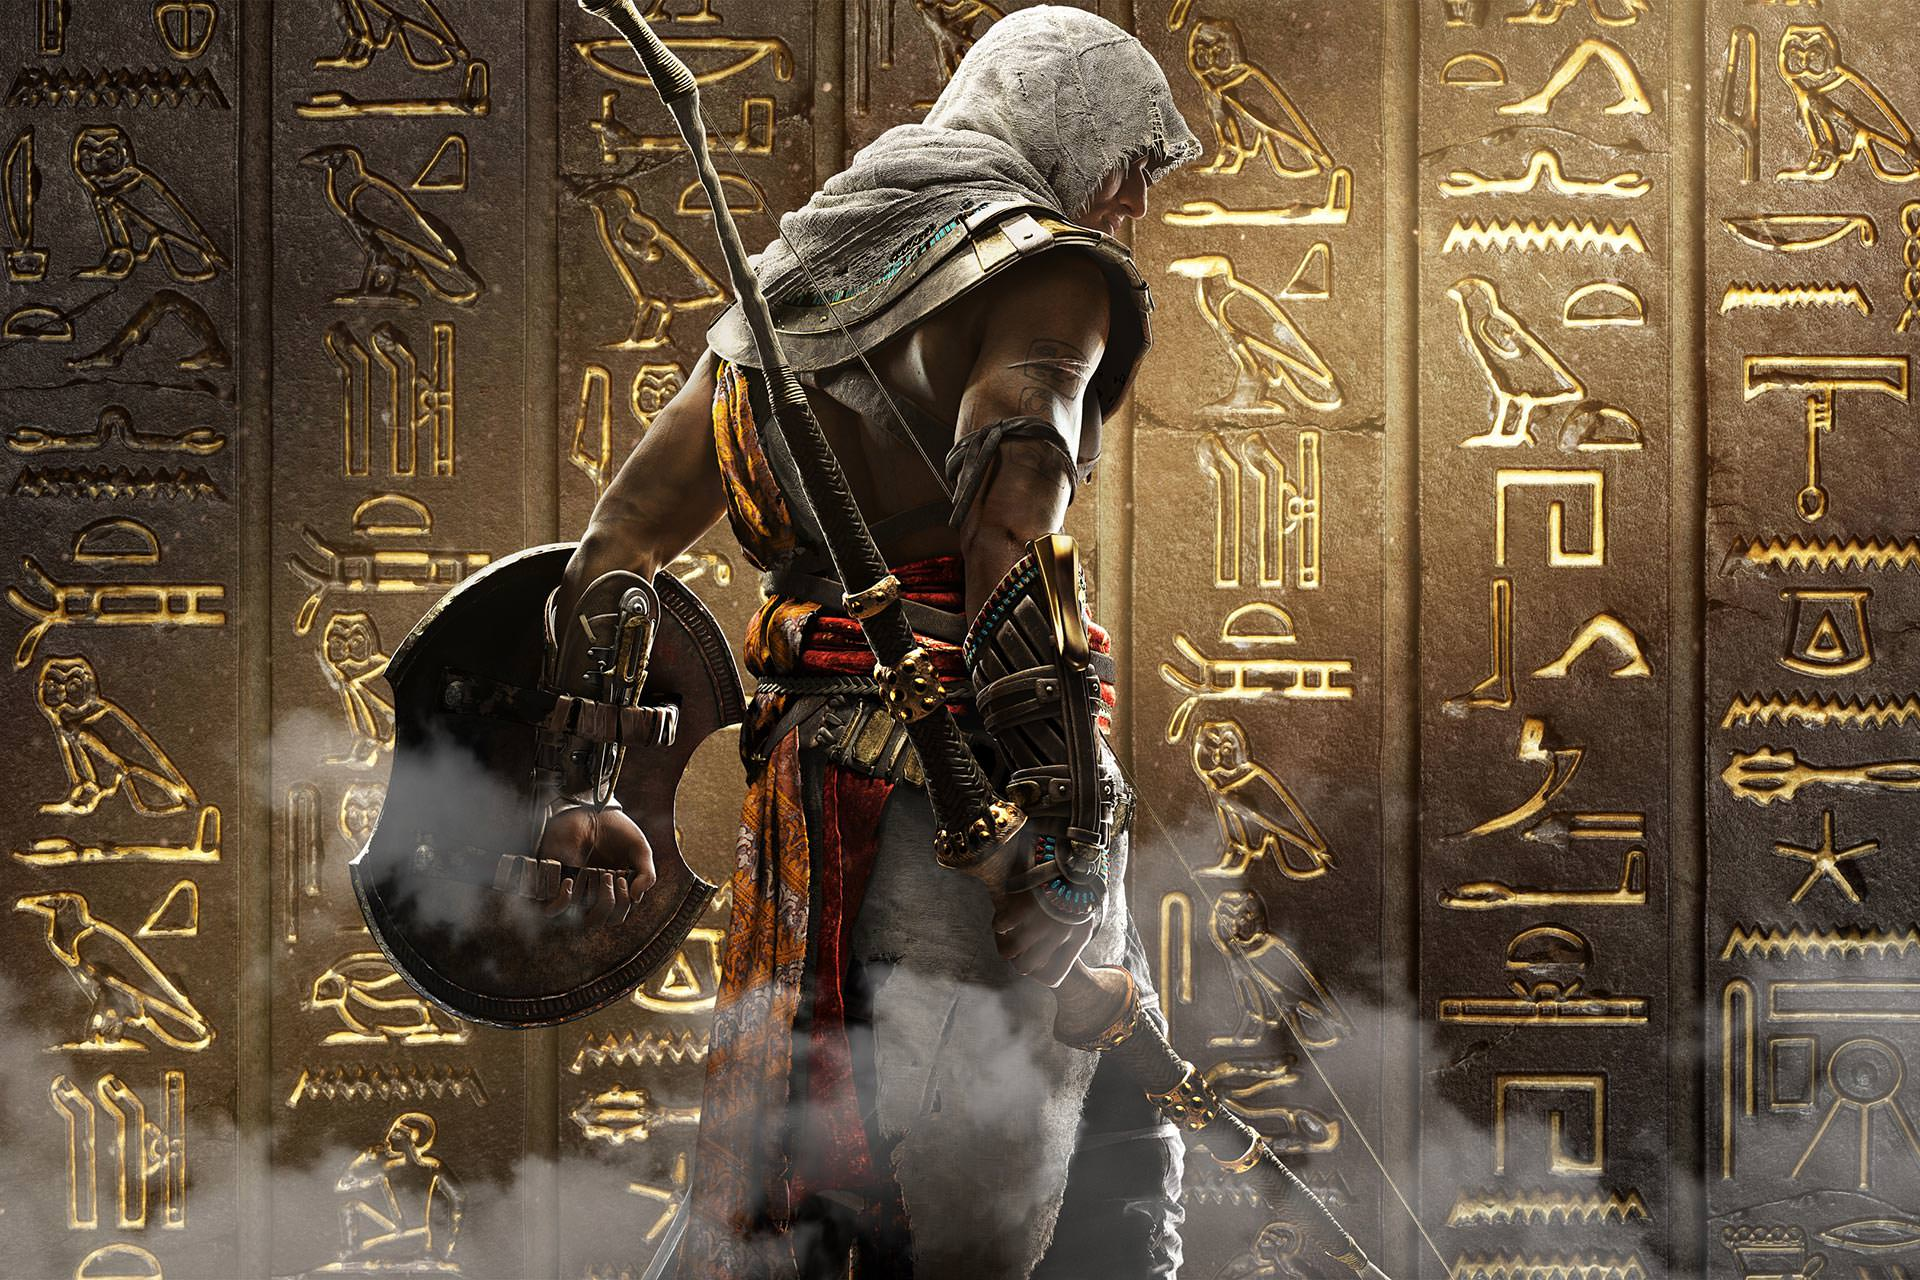 بررسی بازی Assassin's Creed: Origins